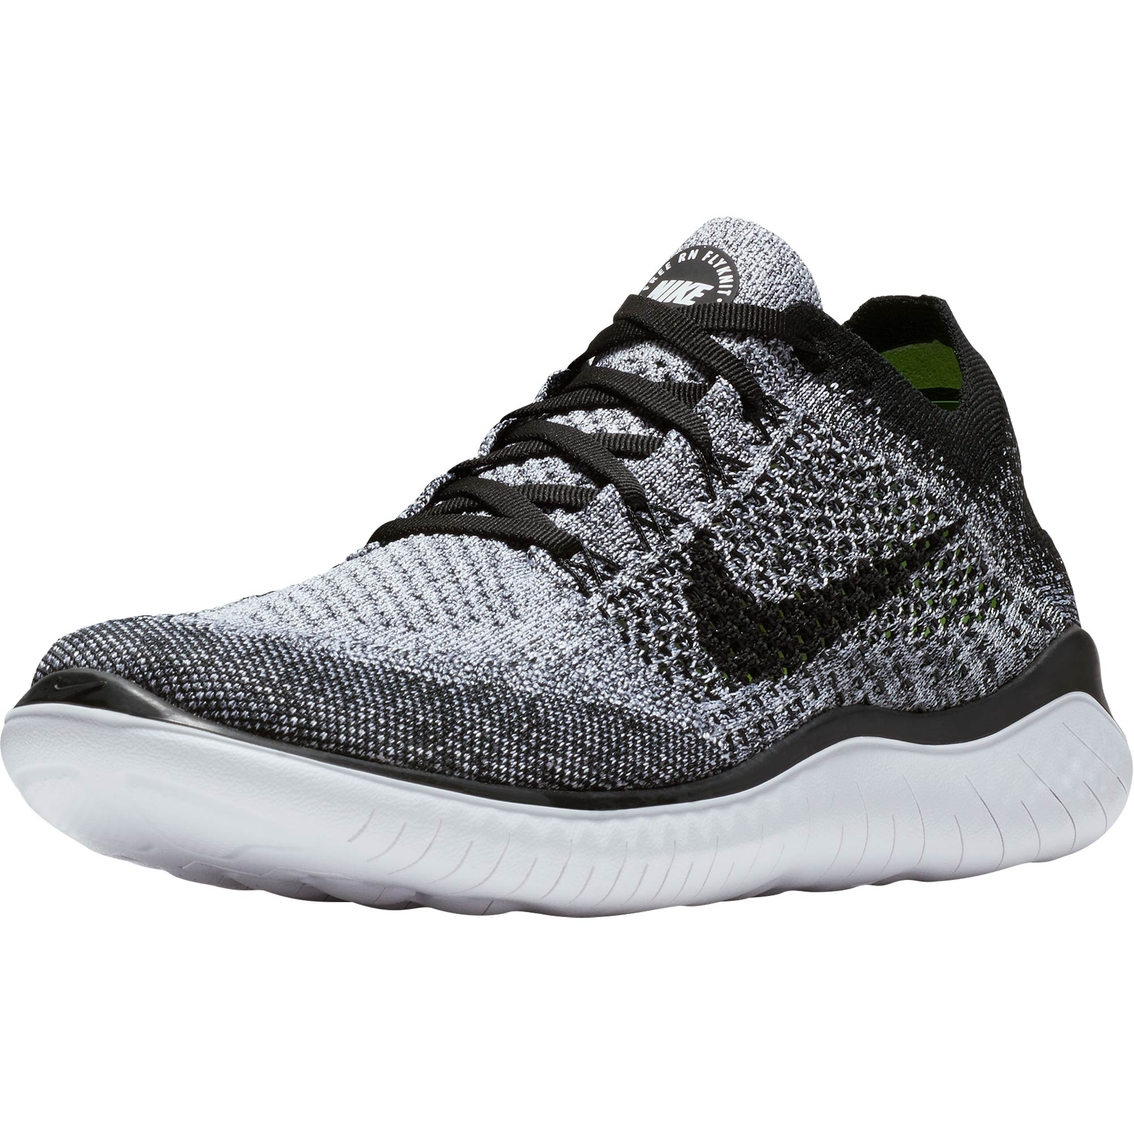 e309a59cfc88 Nike Men s Free Rn Flyknit 2018 Running Shoes